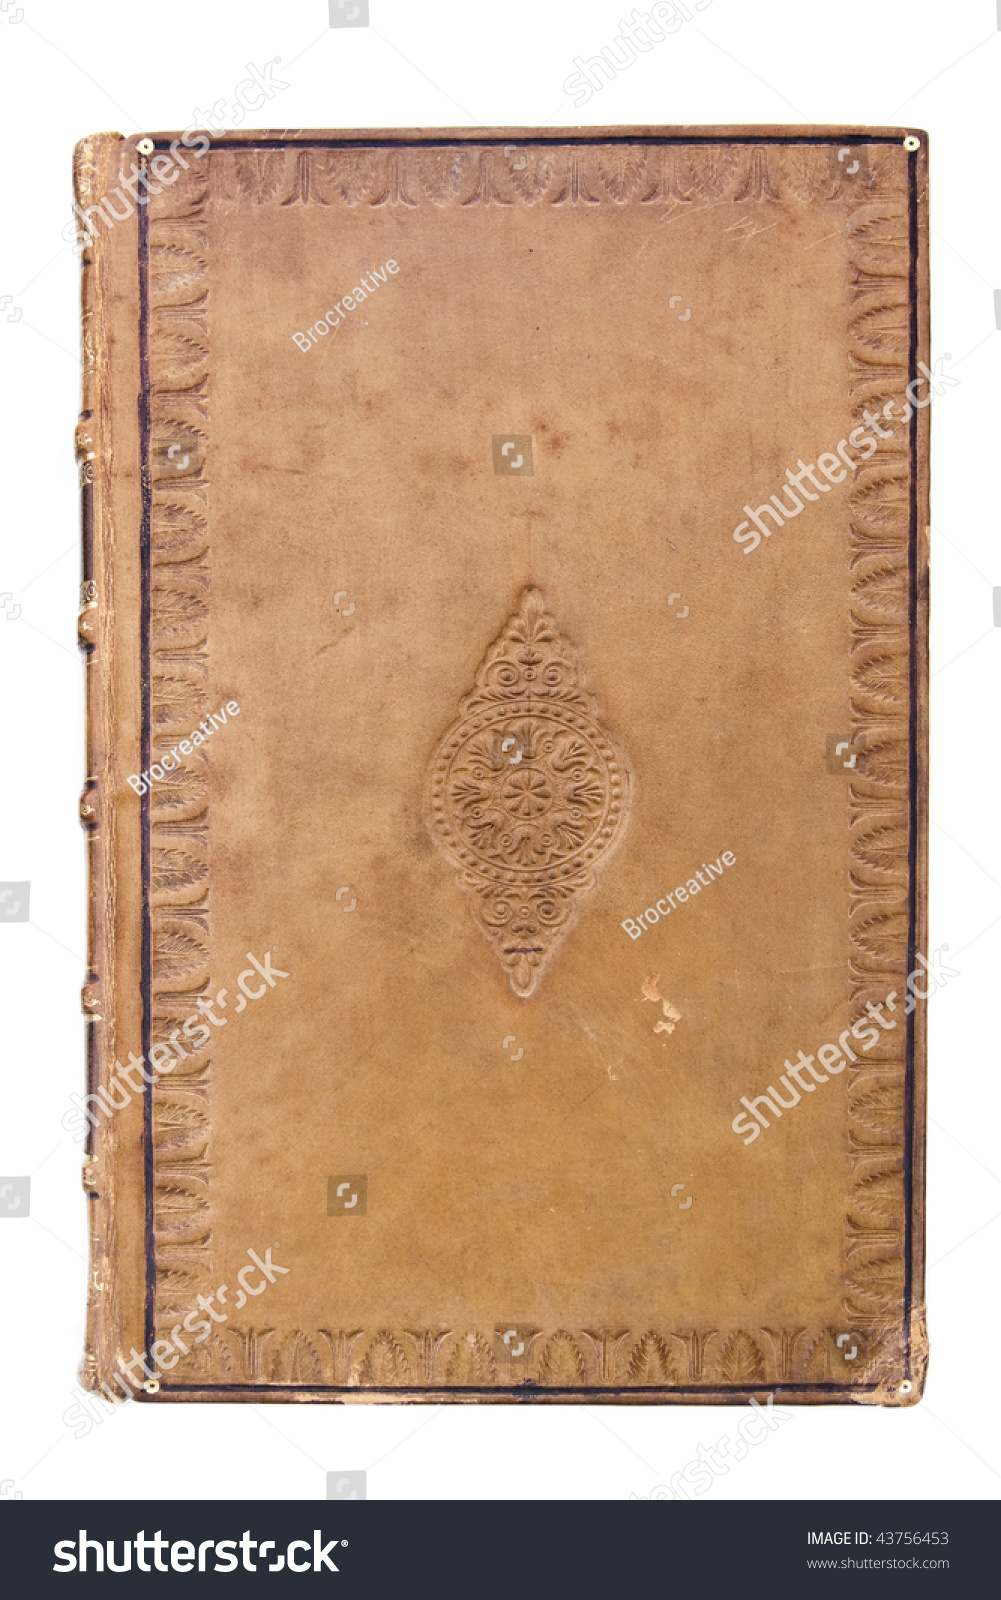 Book Cover Stock Images : Antique leather book cover stock photo shutterstock